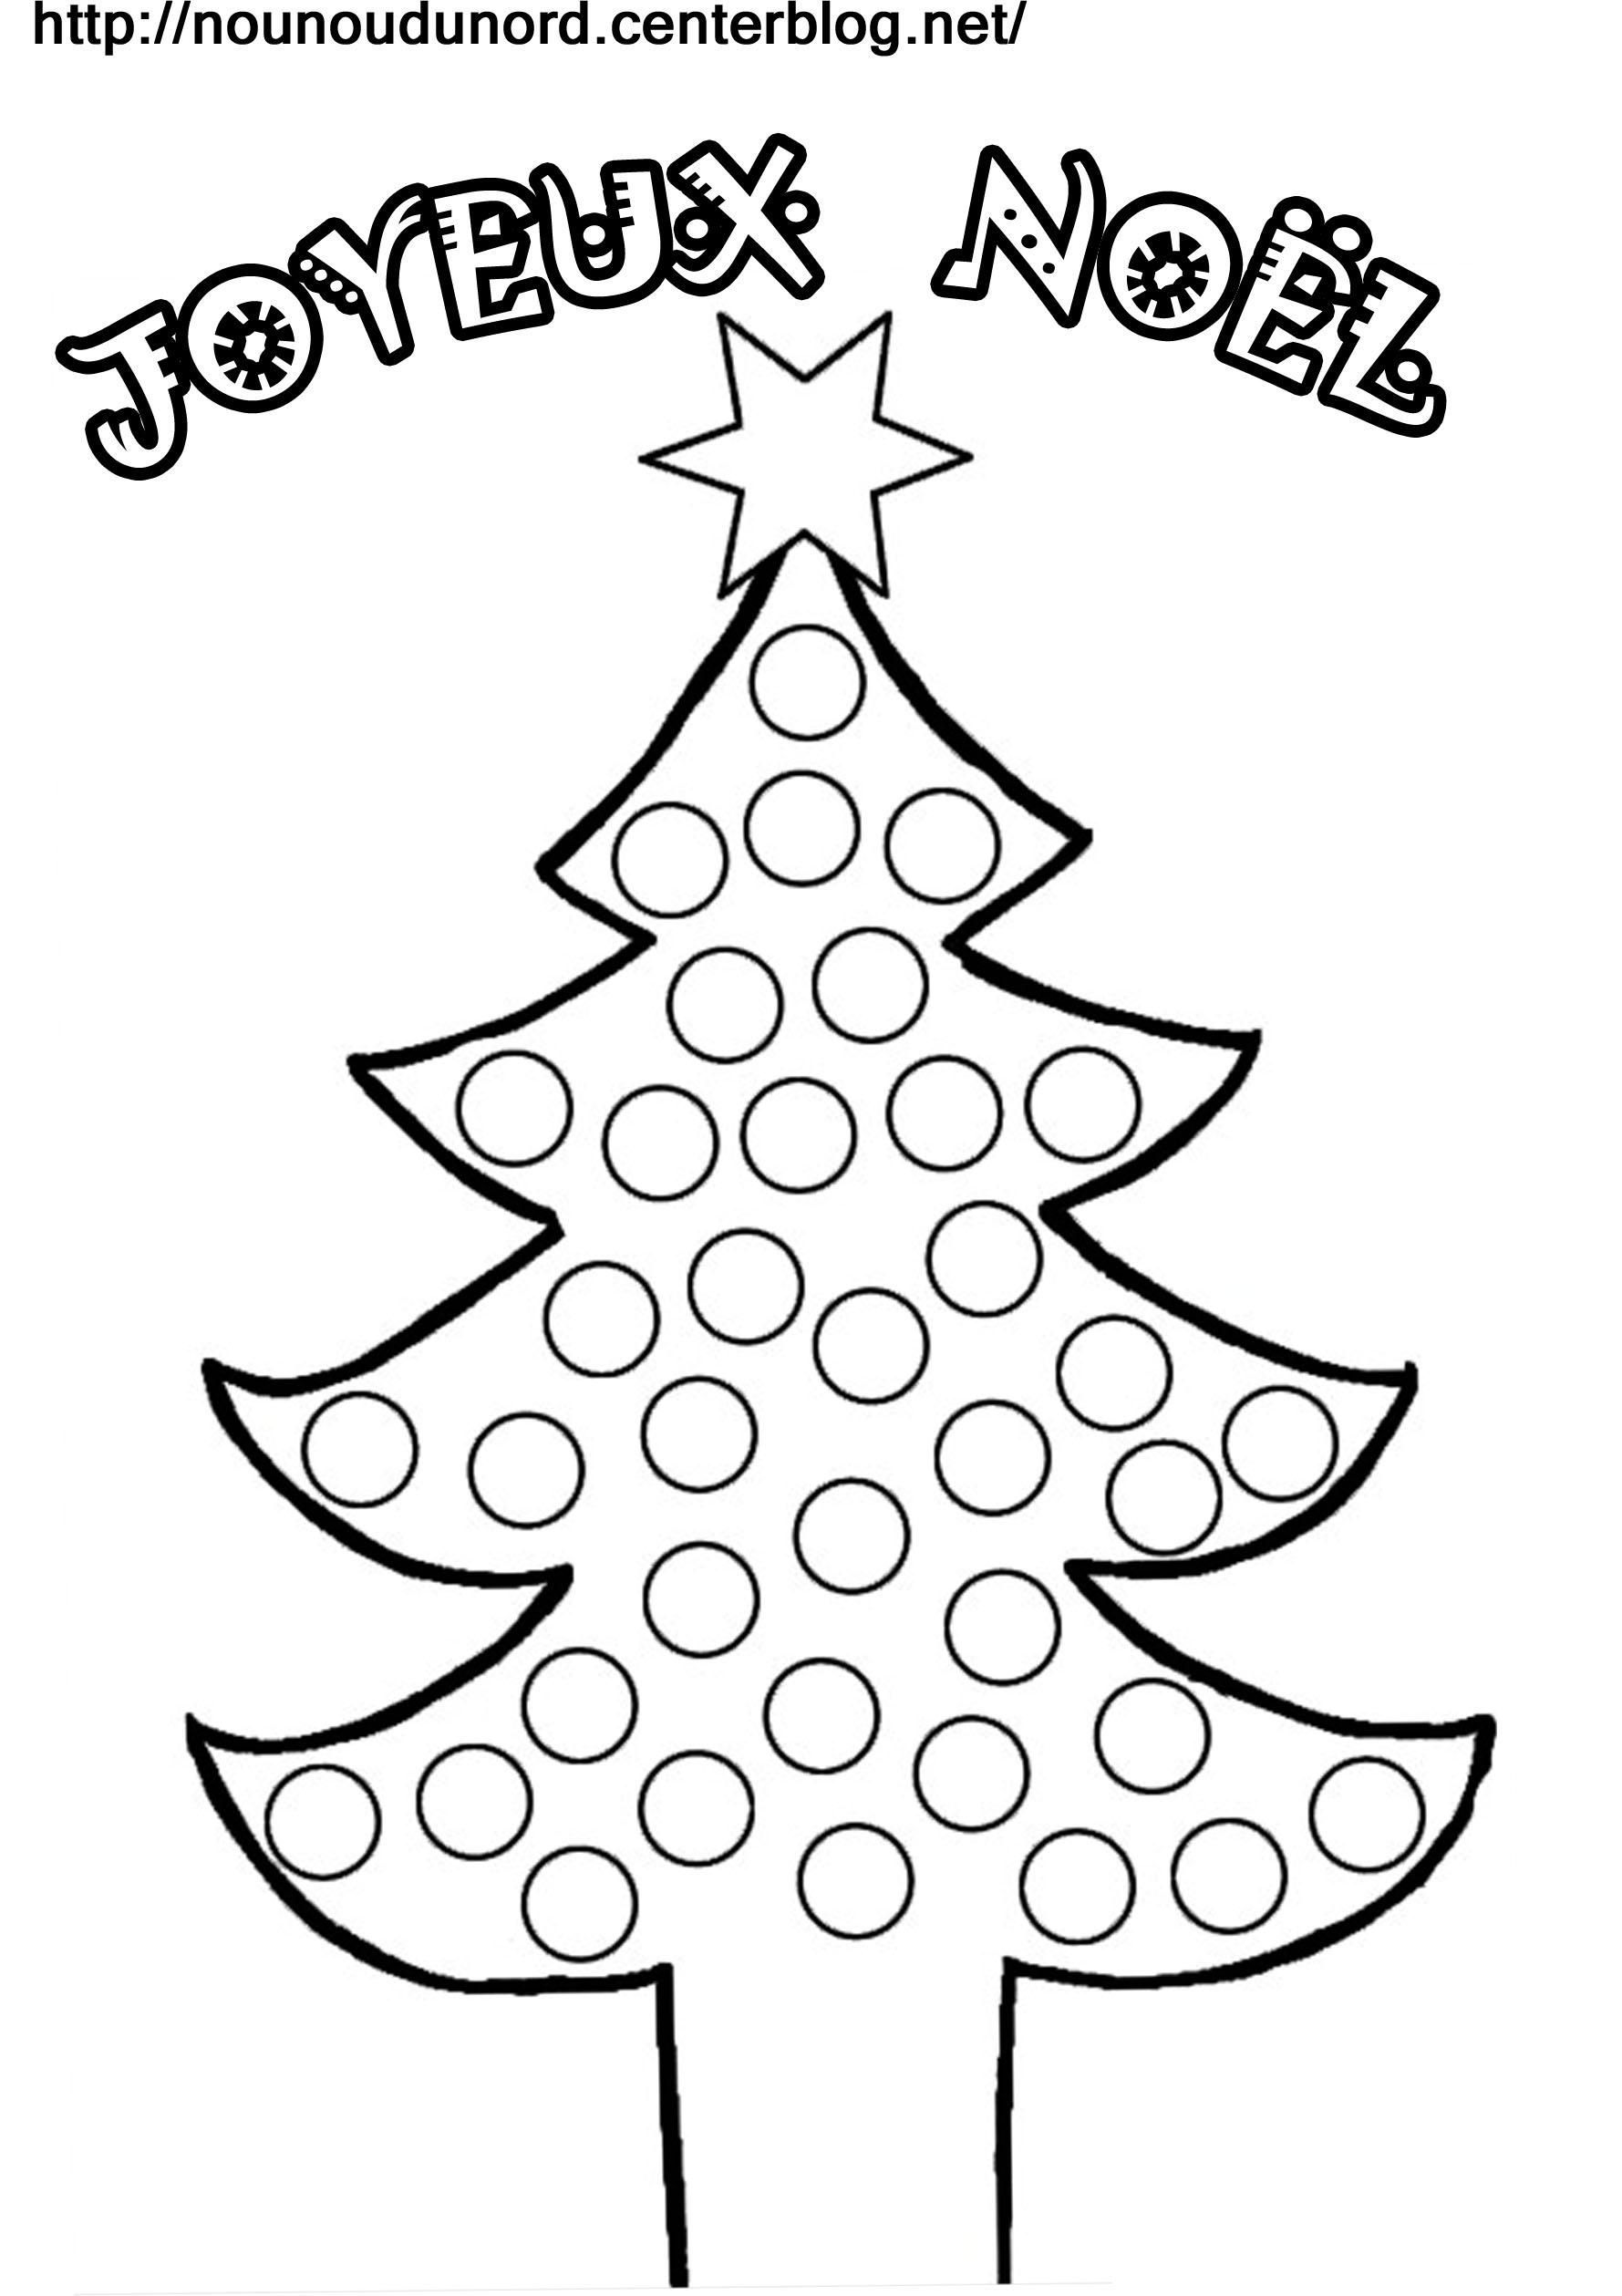 dessin de decoration sapin noel neige coloriage pelautscom tattoo tattooskid. Black Bedroom Furniture Sets. Home Design Ideas